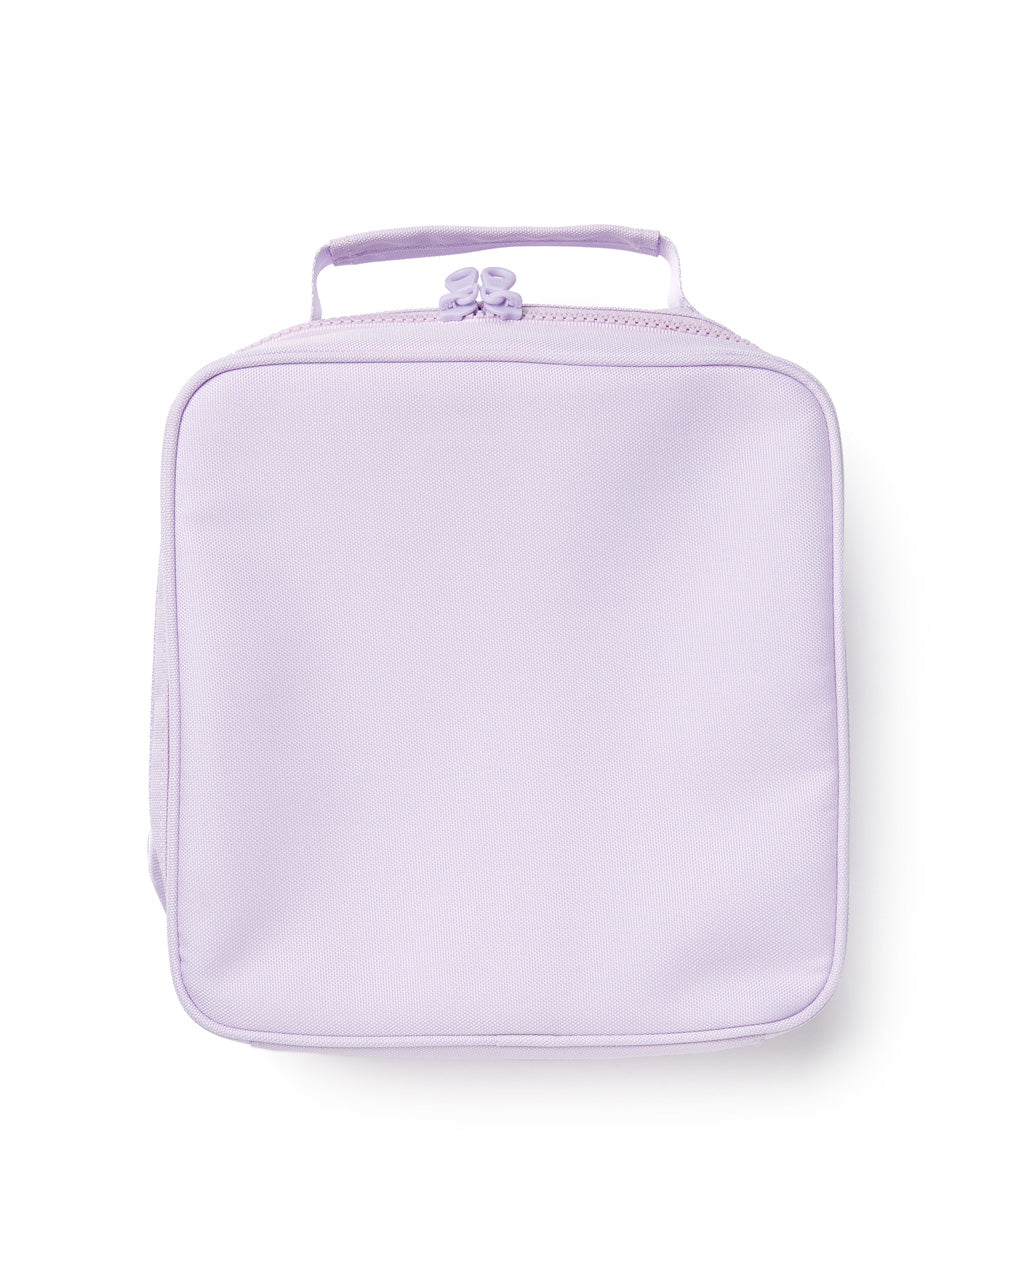 What's for Lunch? Square Lunch Bag - Lilac